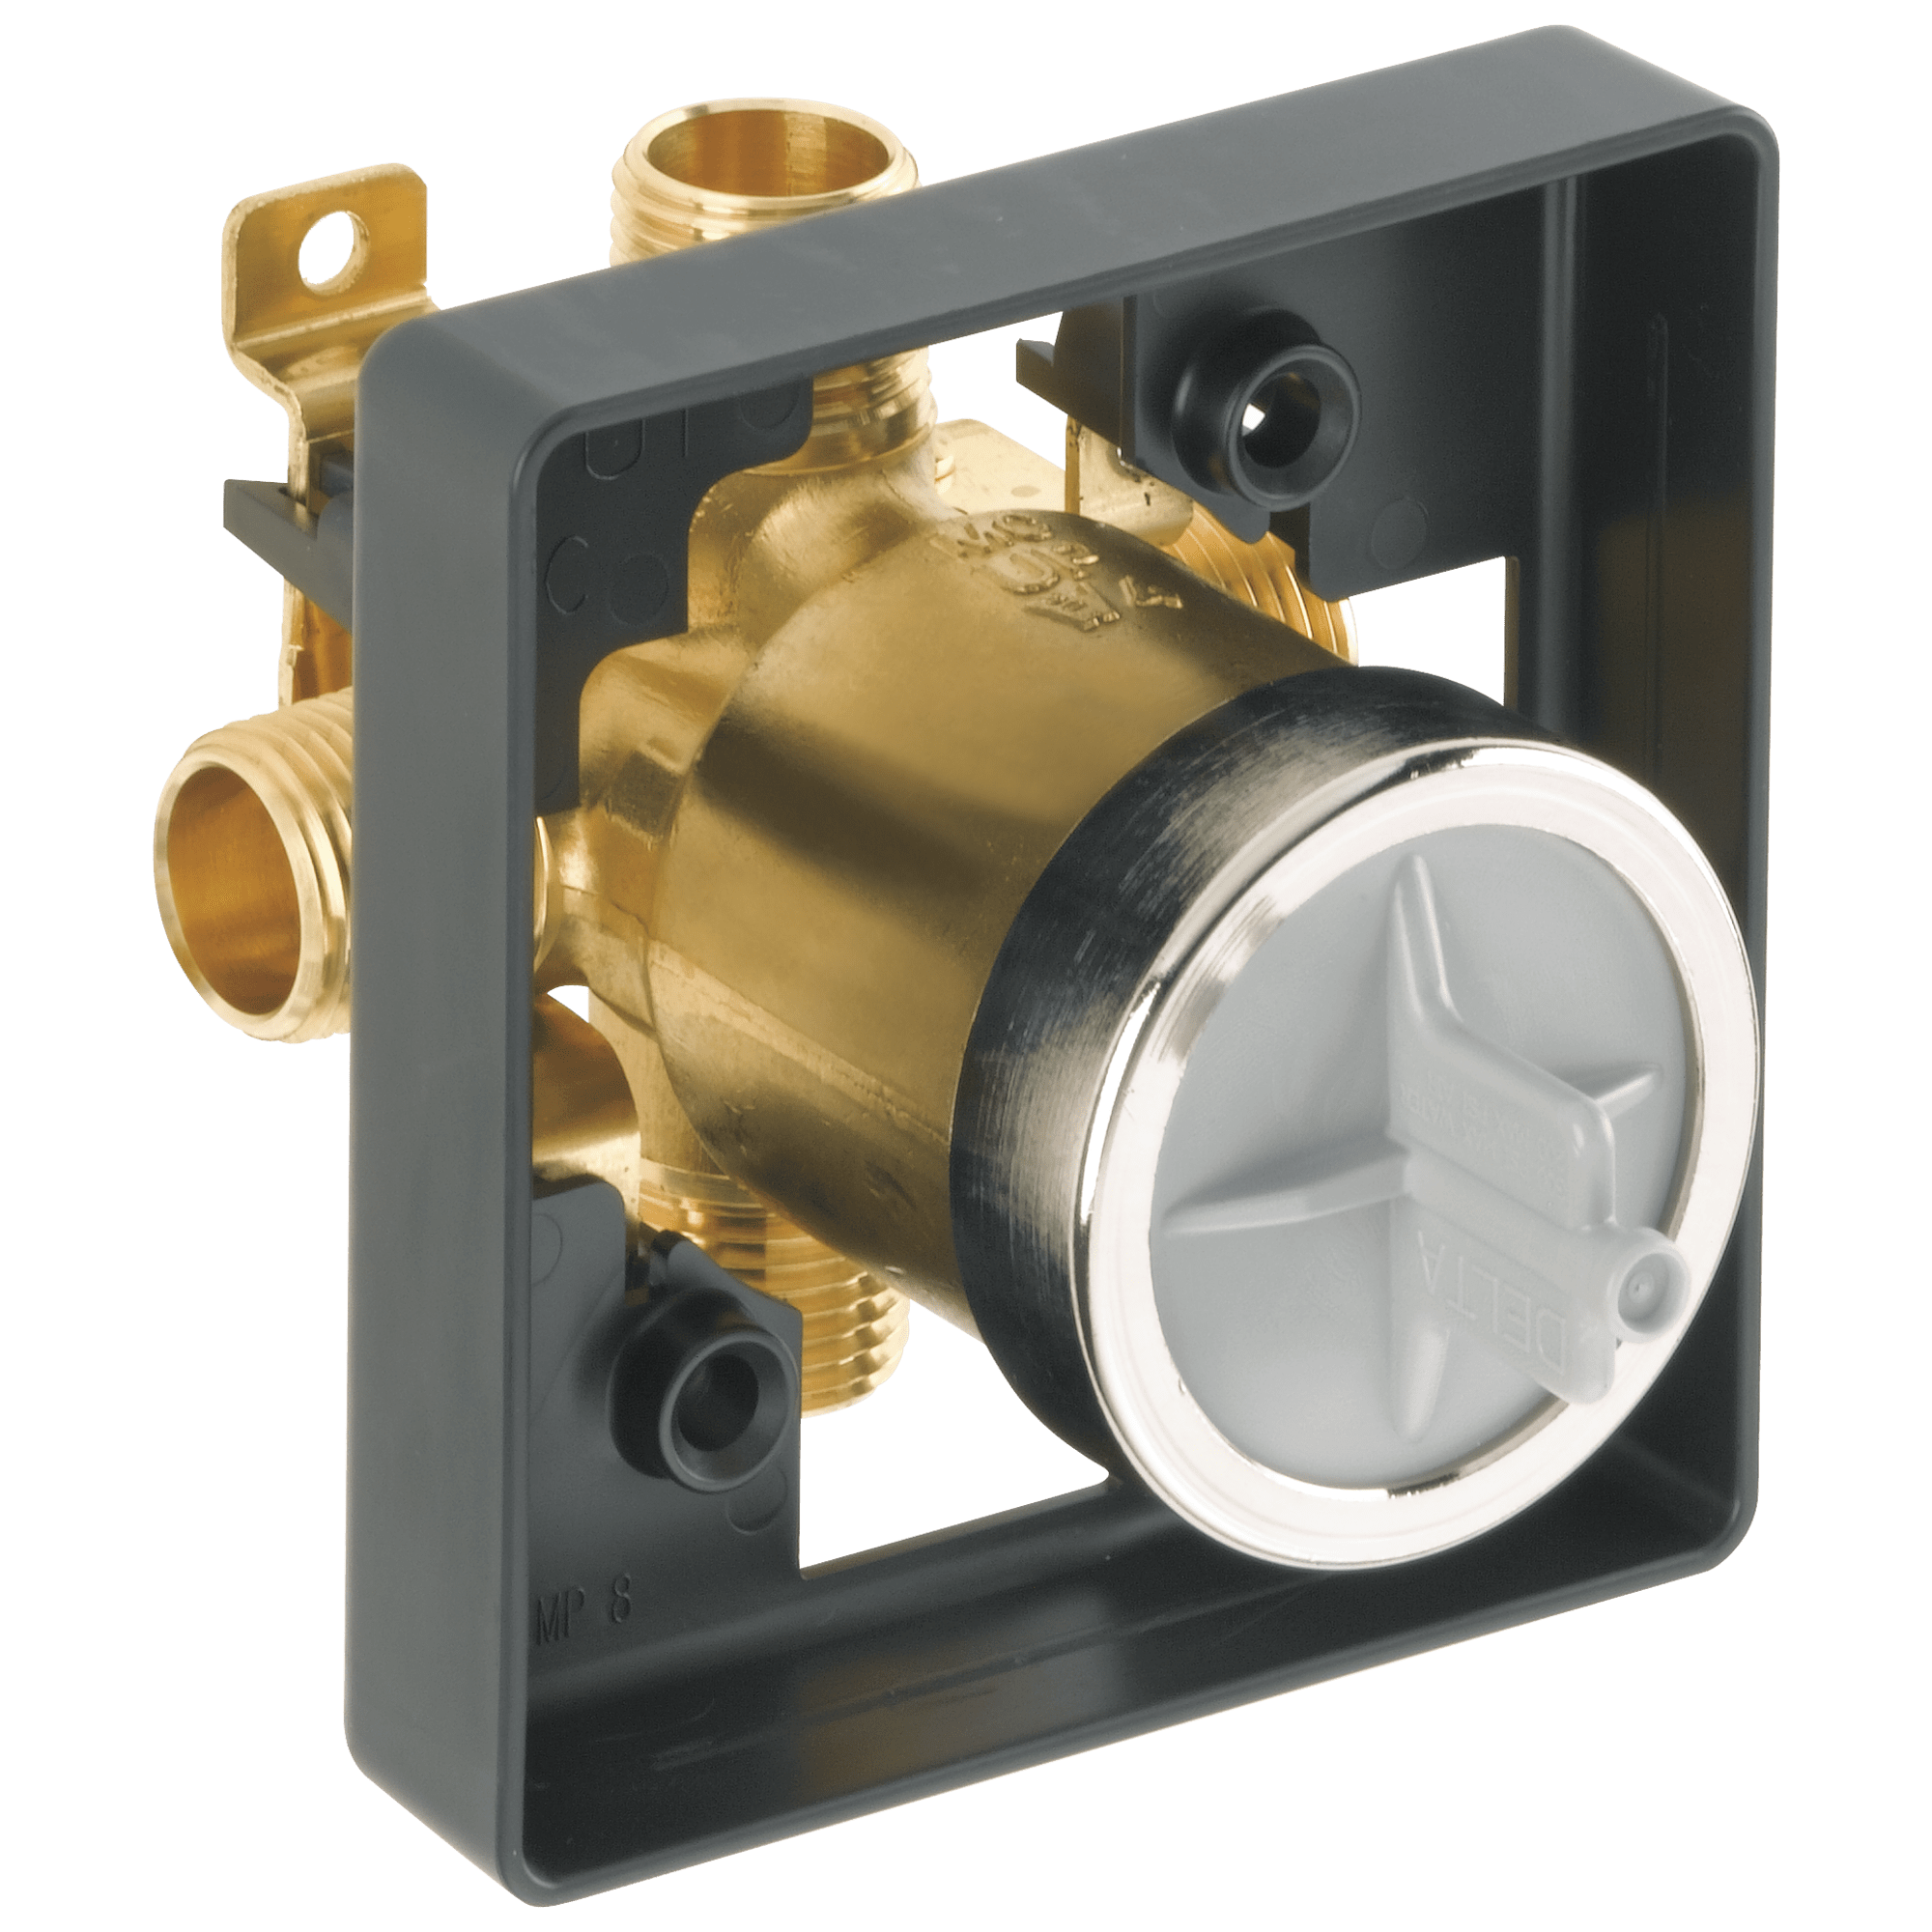 multichoice universal tub shower rough universal inlets outlets